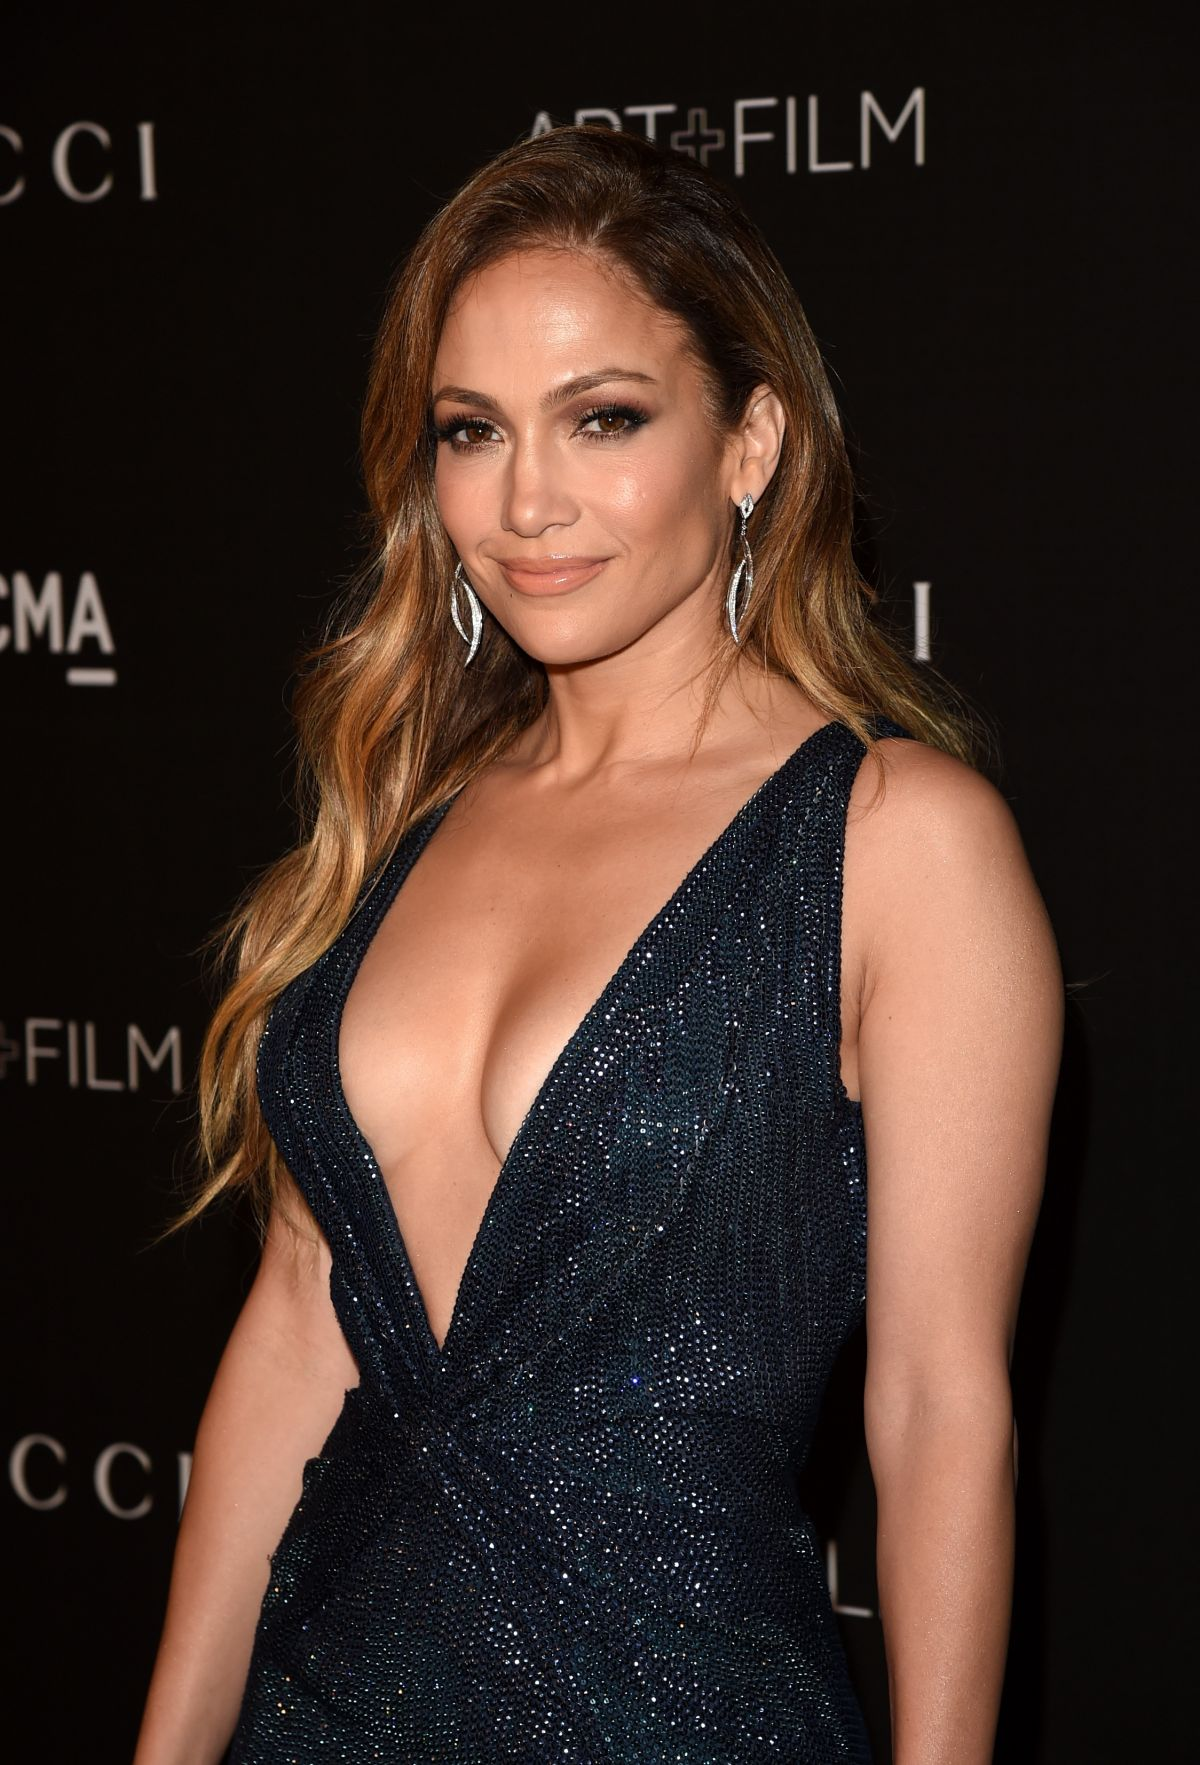 JENNIFER LOPEZ at 2014 Lacma Art + Film Gala in Los Angeles ...